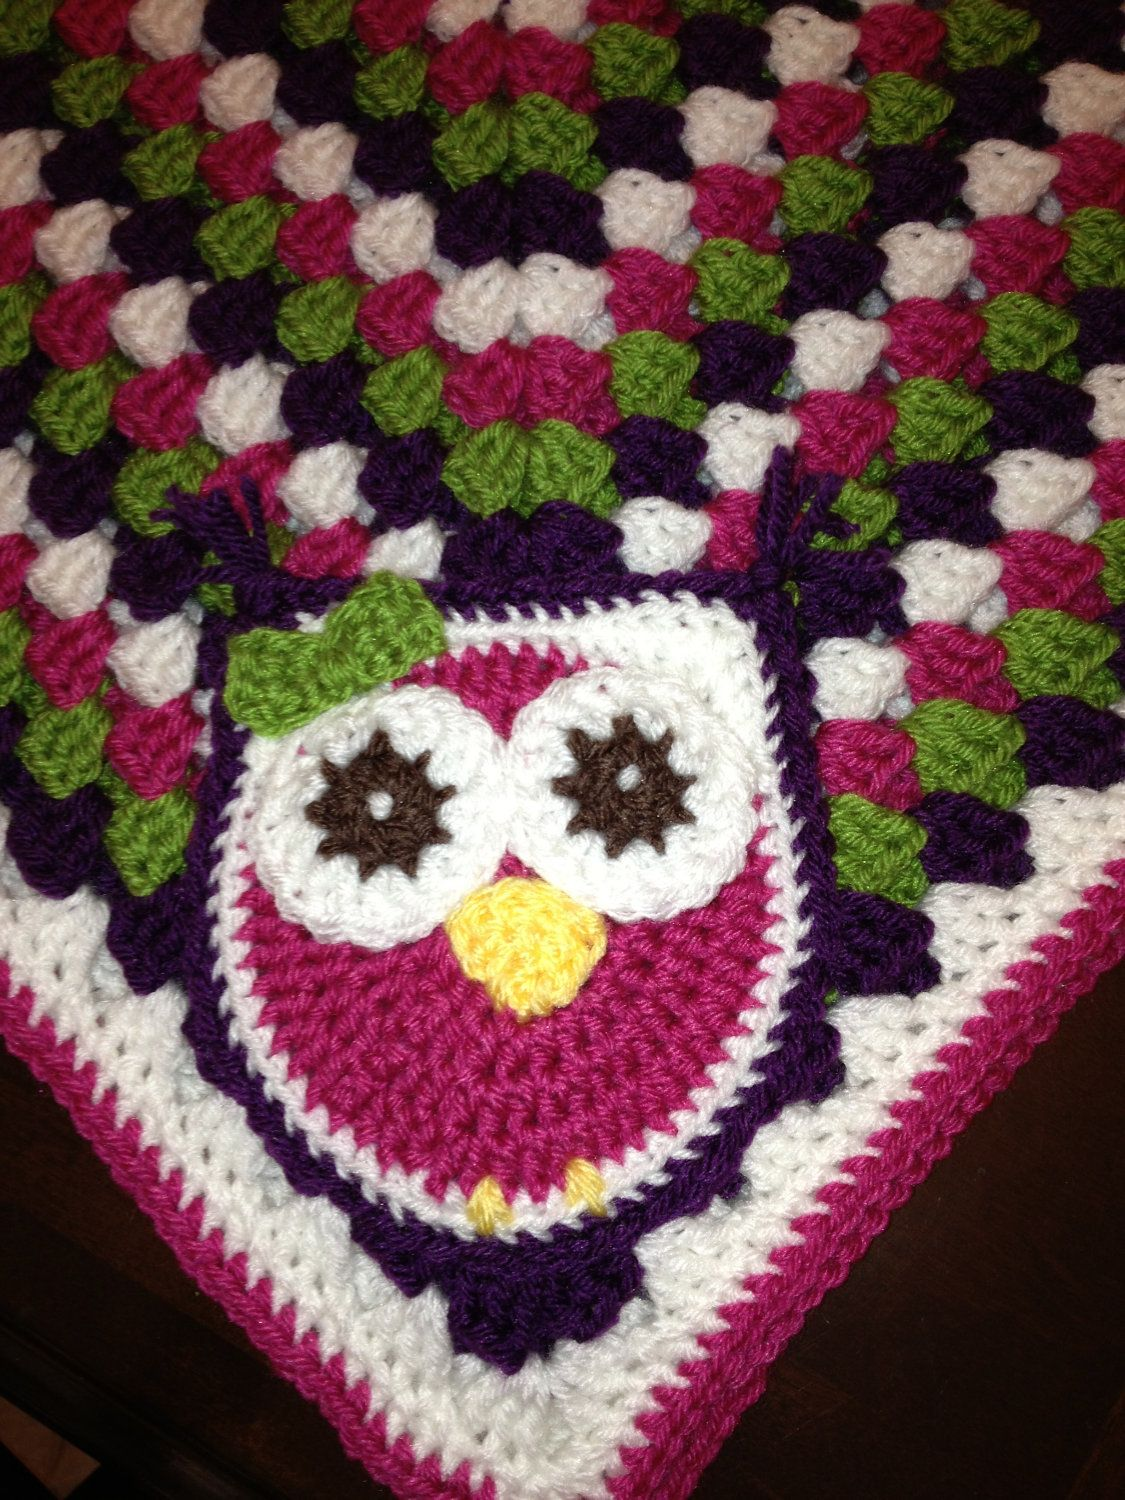 Crochet baby blanket pattern granny square crib blanket with owl crochet baby blanket pattern granny square crib blanket with owl for baby 490 bankloansurffo Image collections